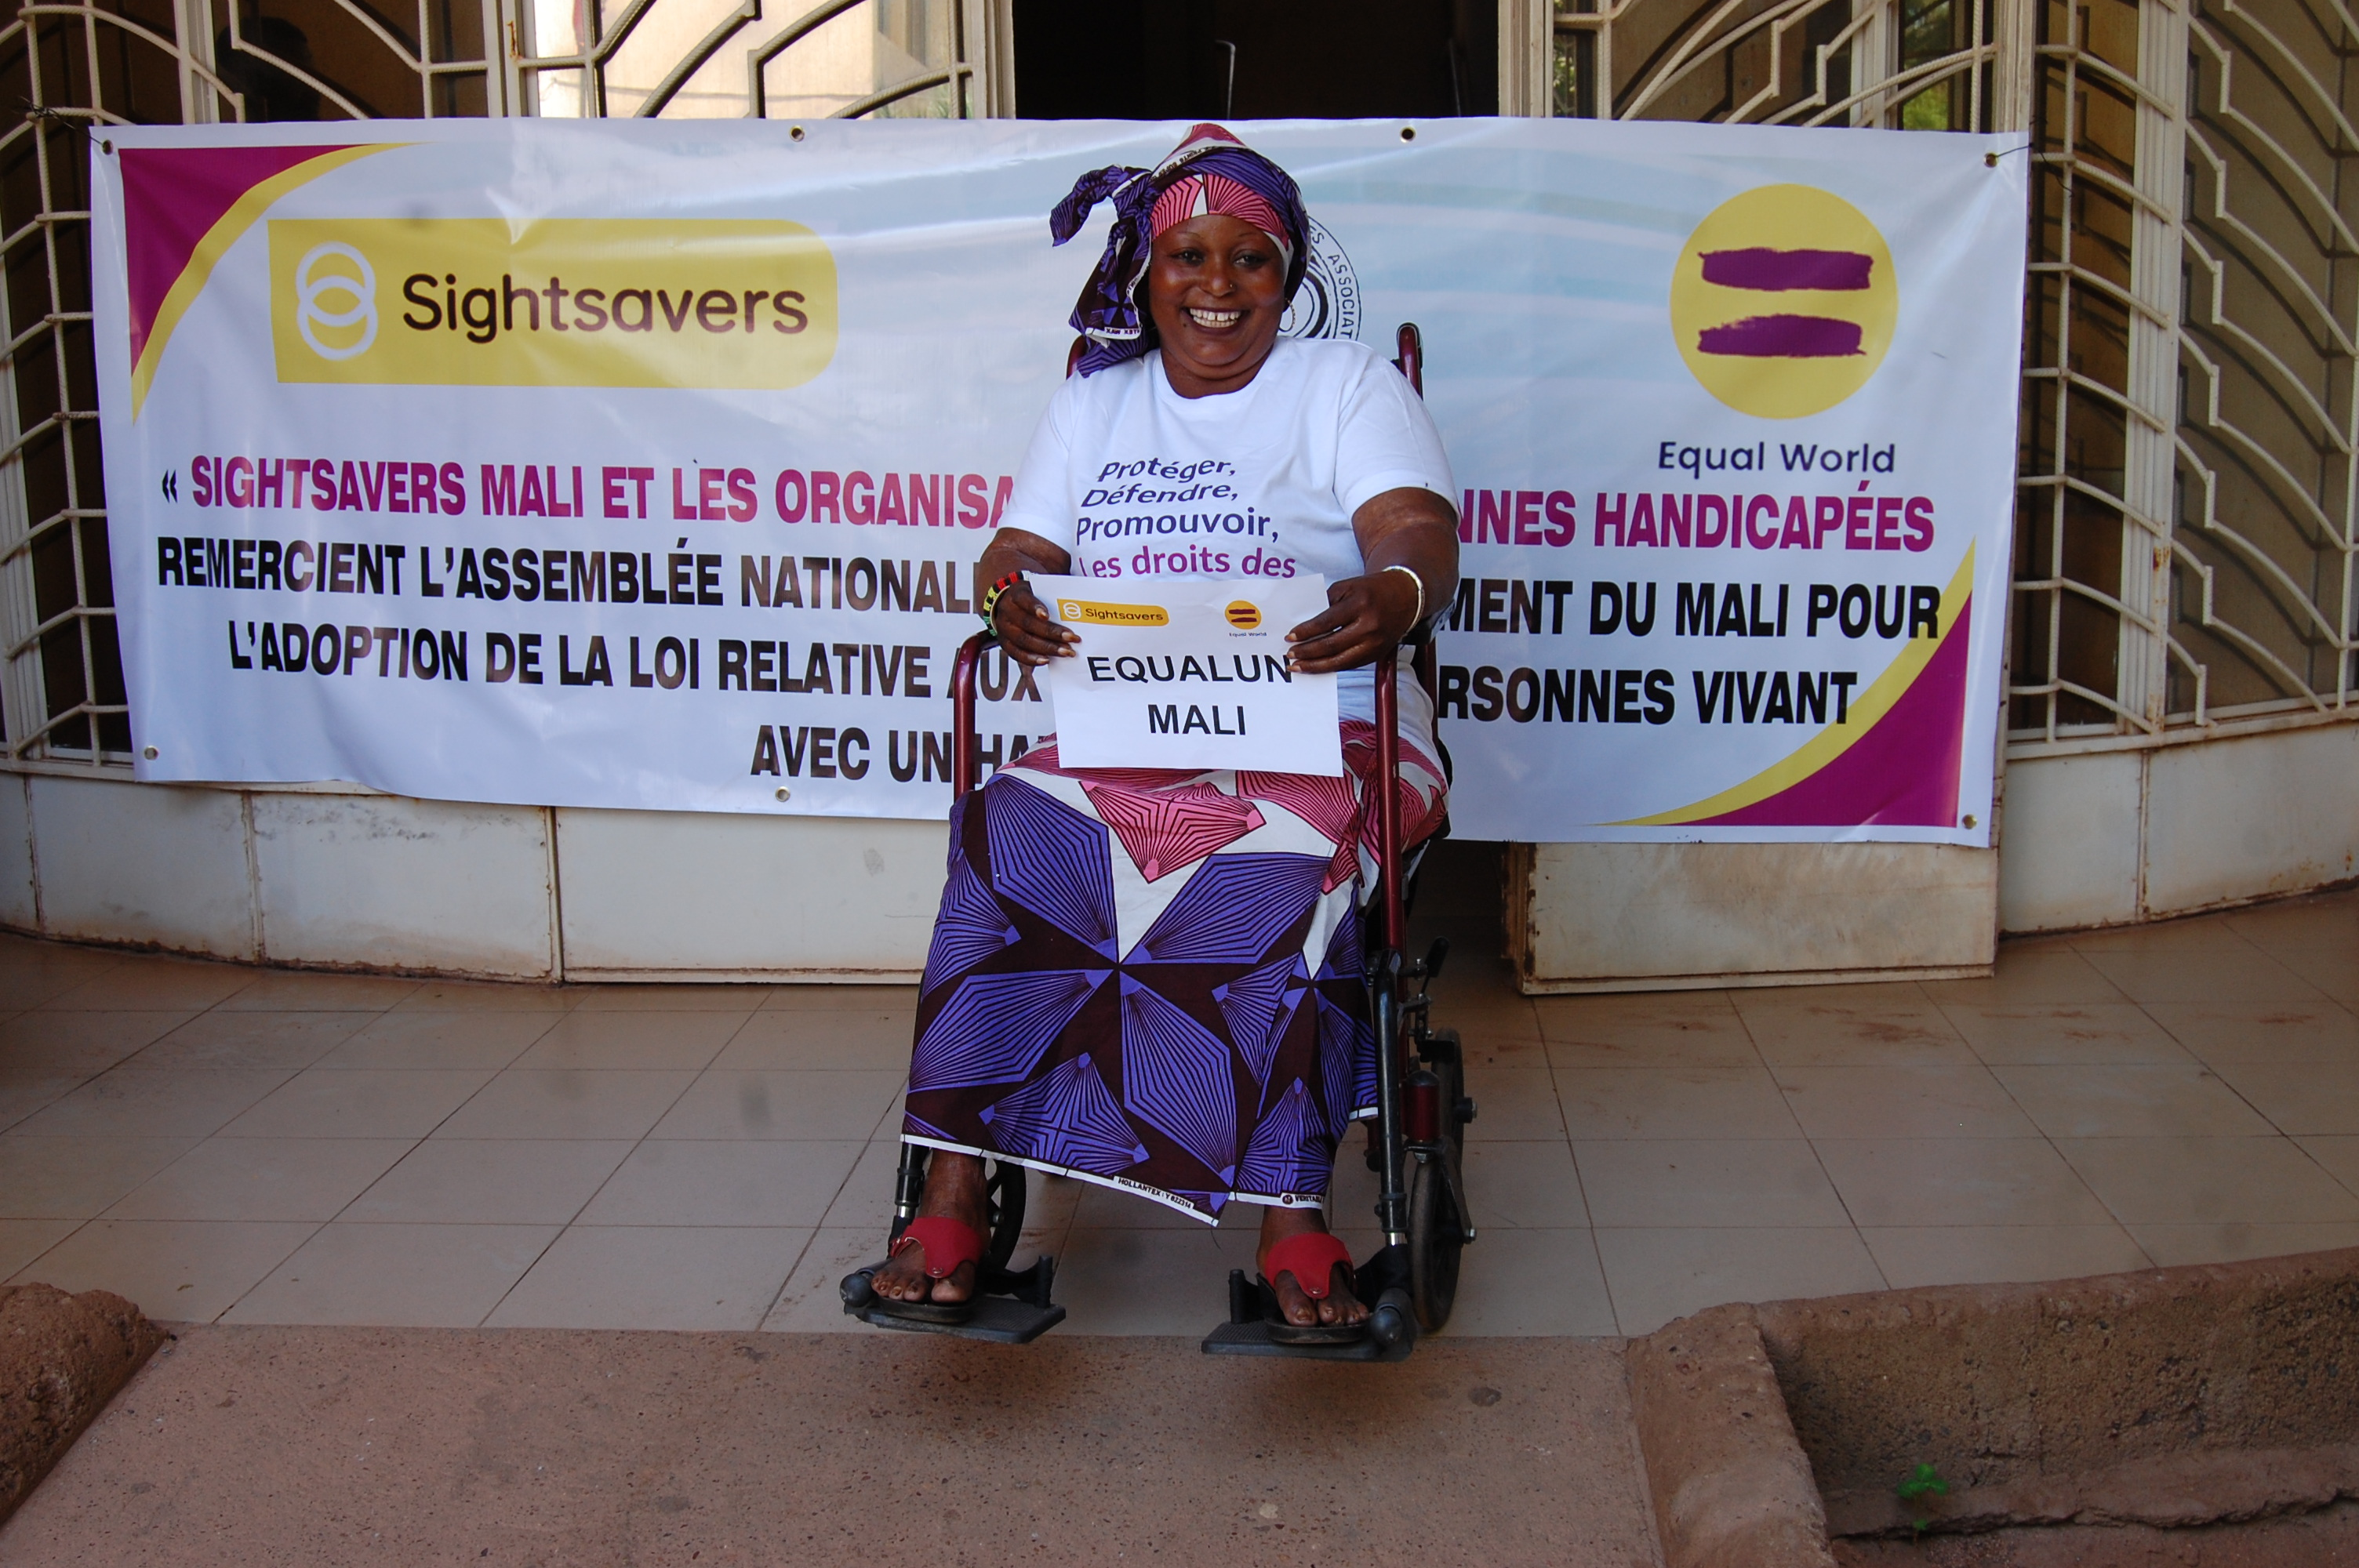 A woman using a wheelchair sitting in front of a disability rights banner for the Equal World campaign.